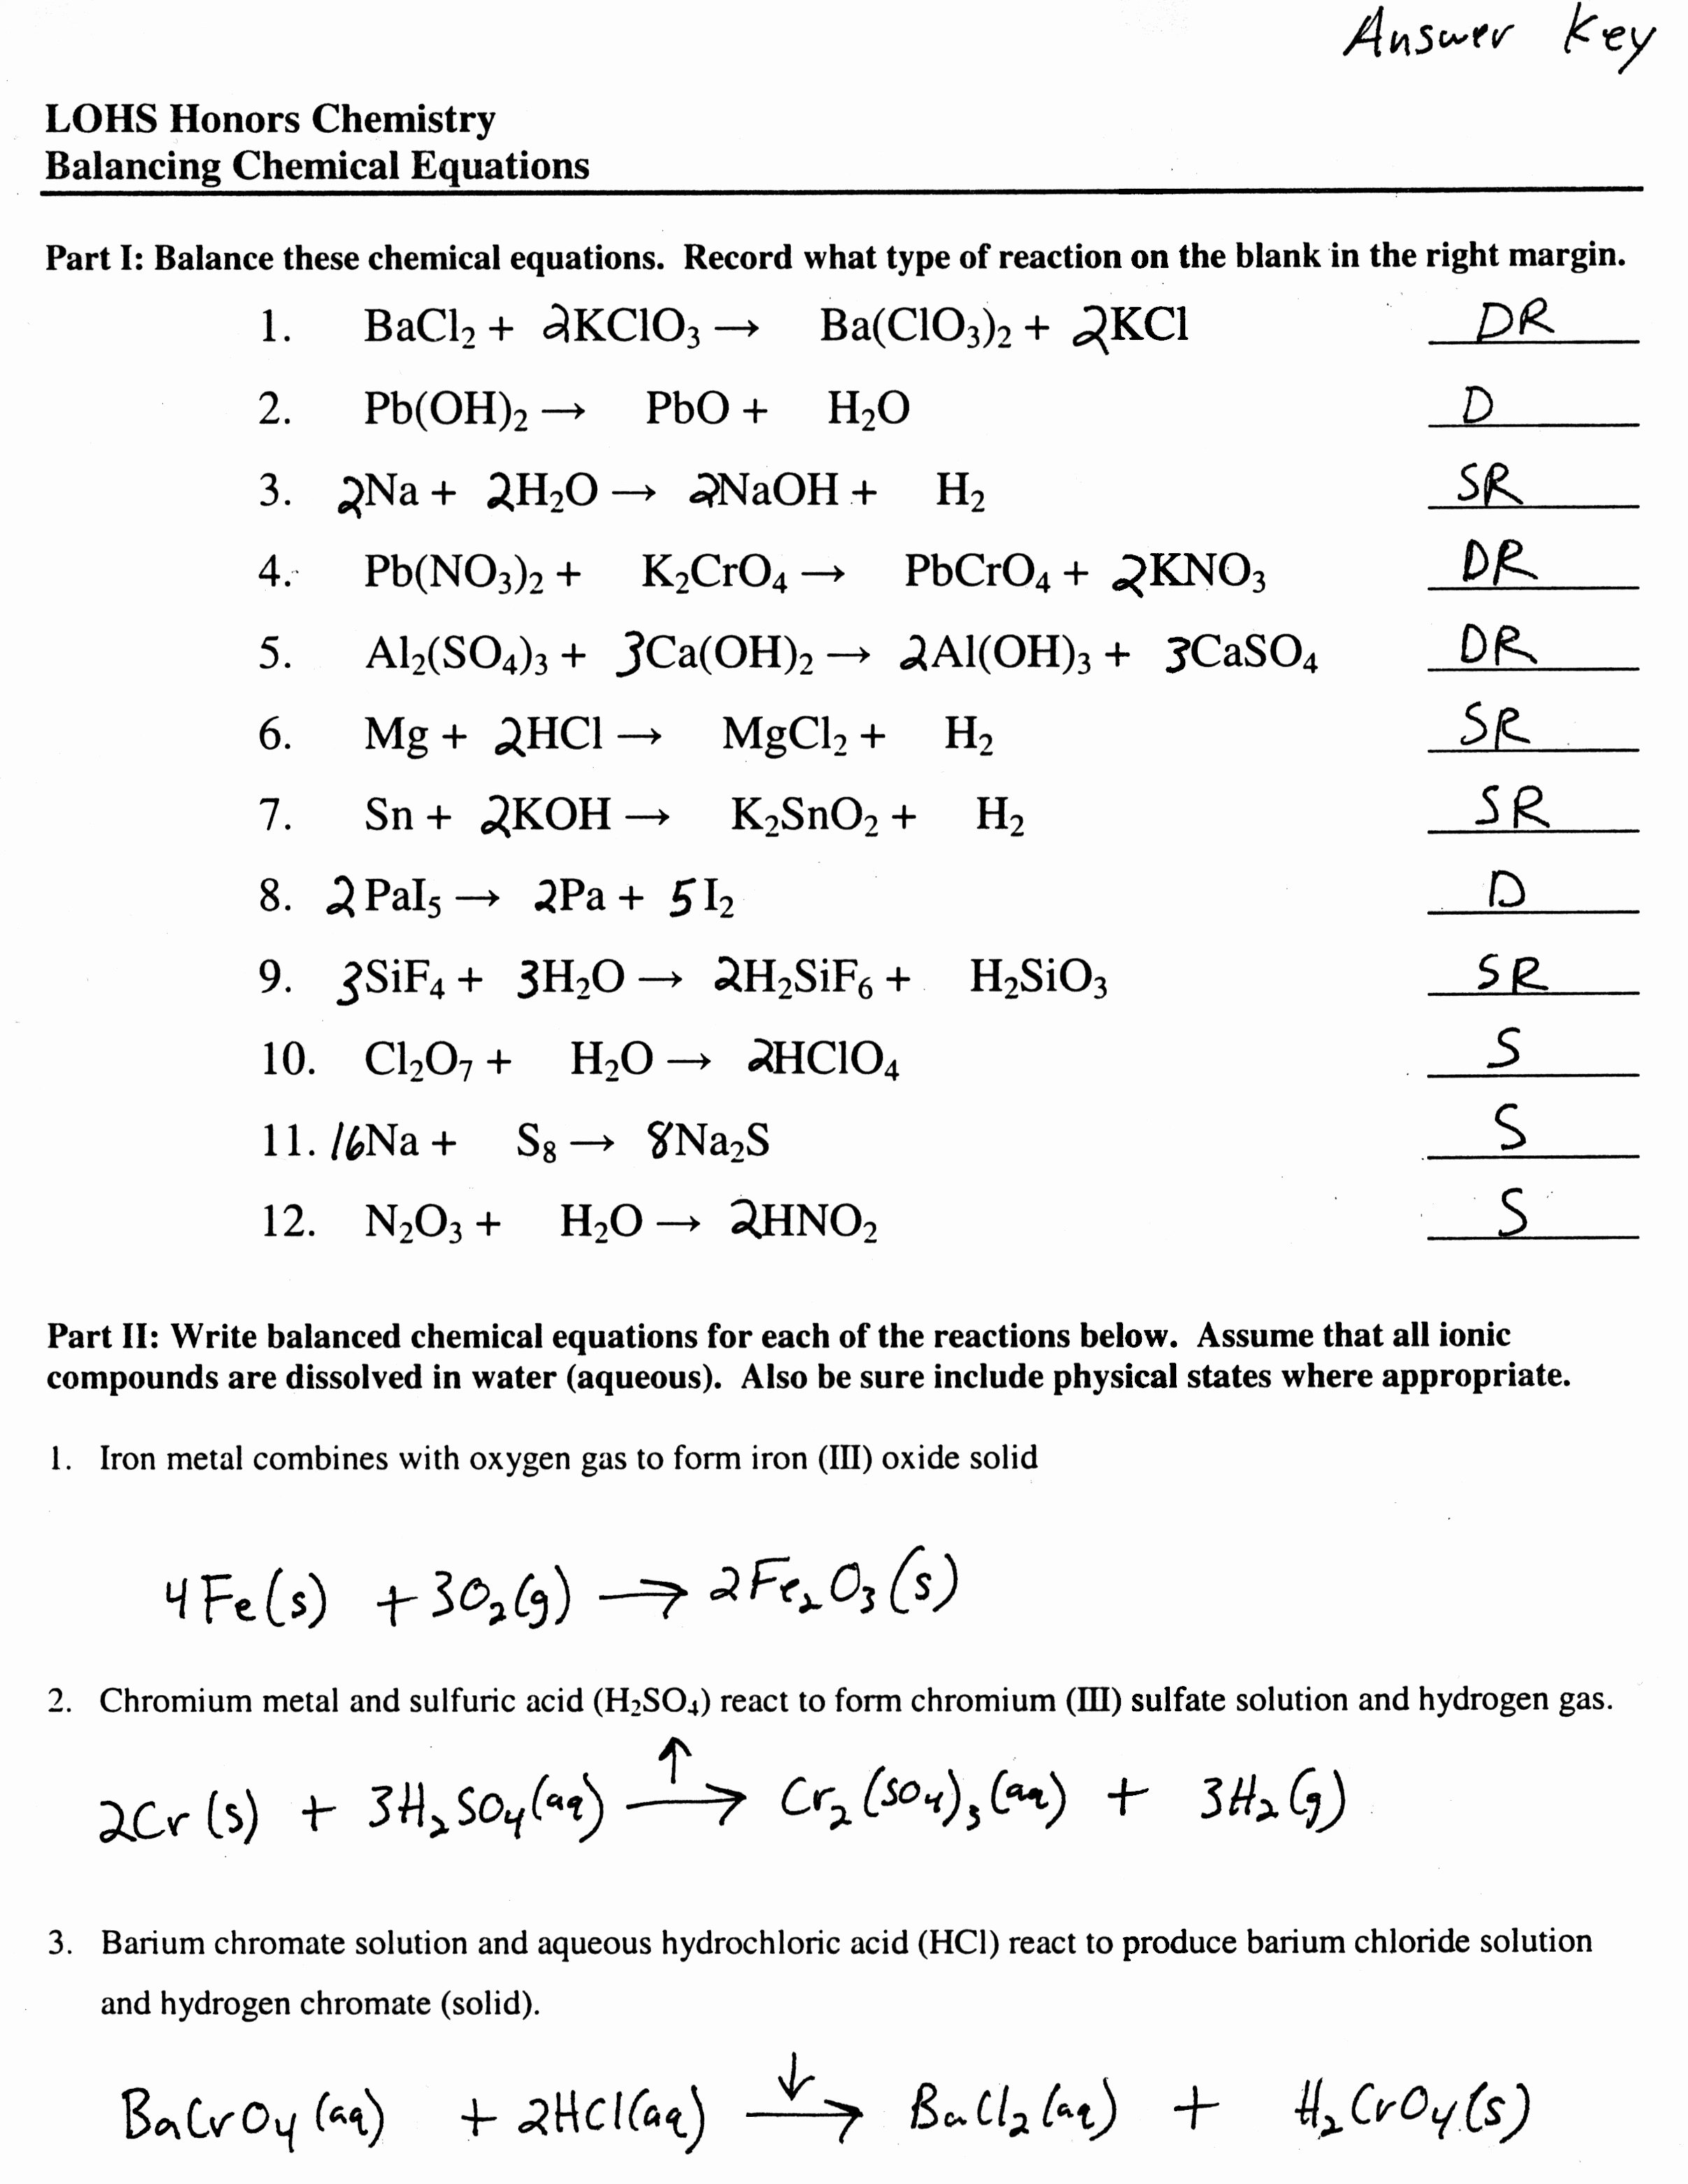 Balancing Equations Worksheet Answers Inspirational Balancing Equations Worksheet Health and Fitness Training